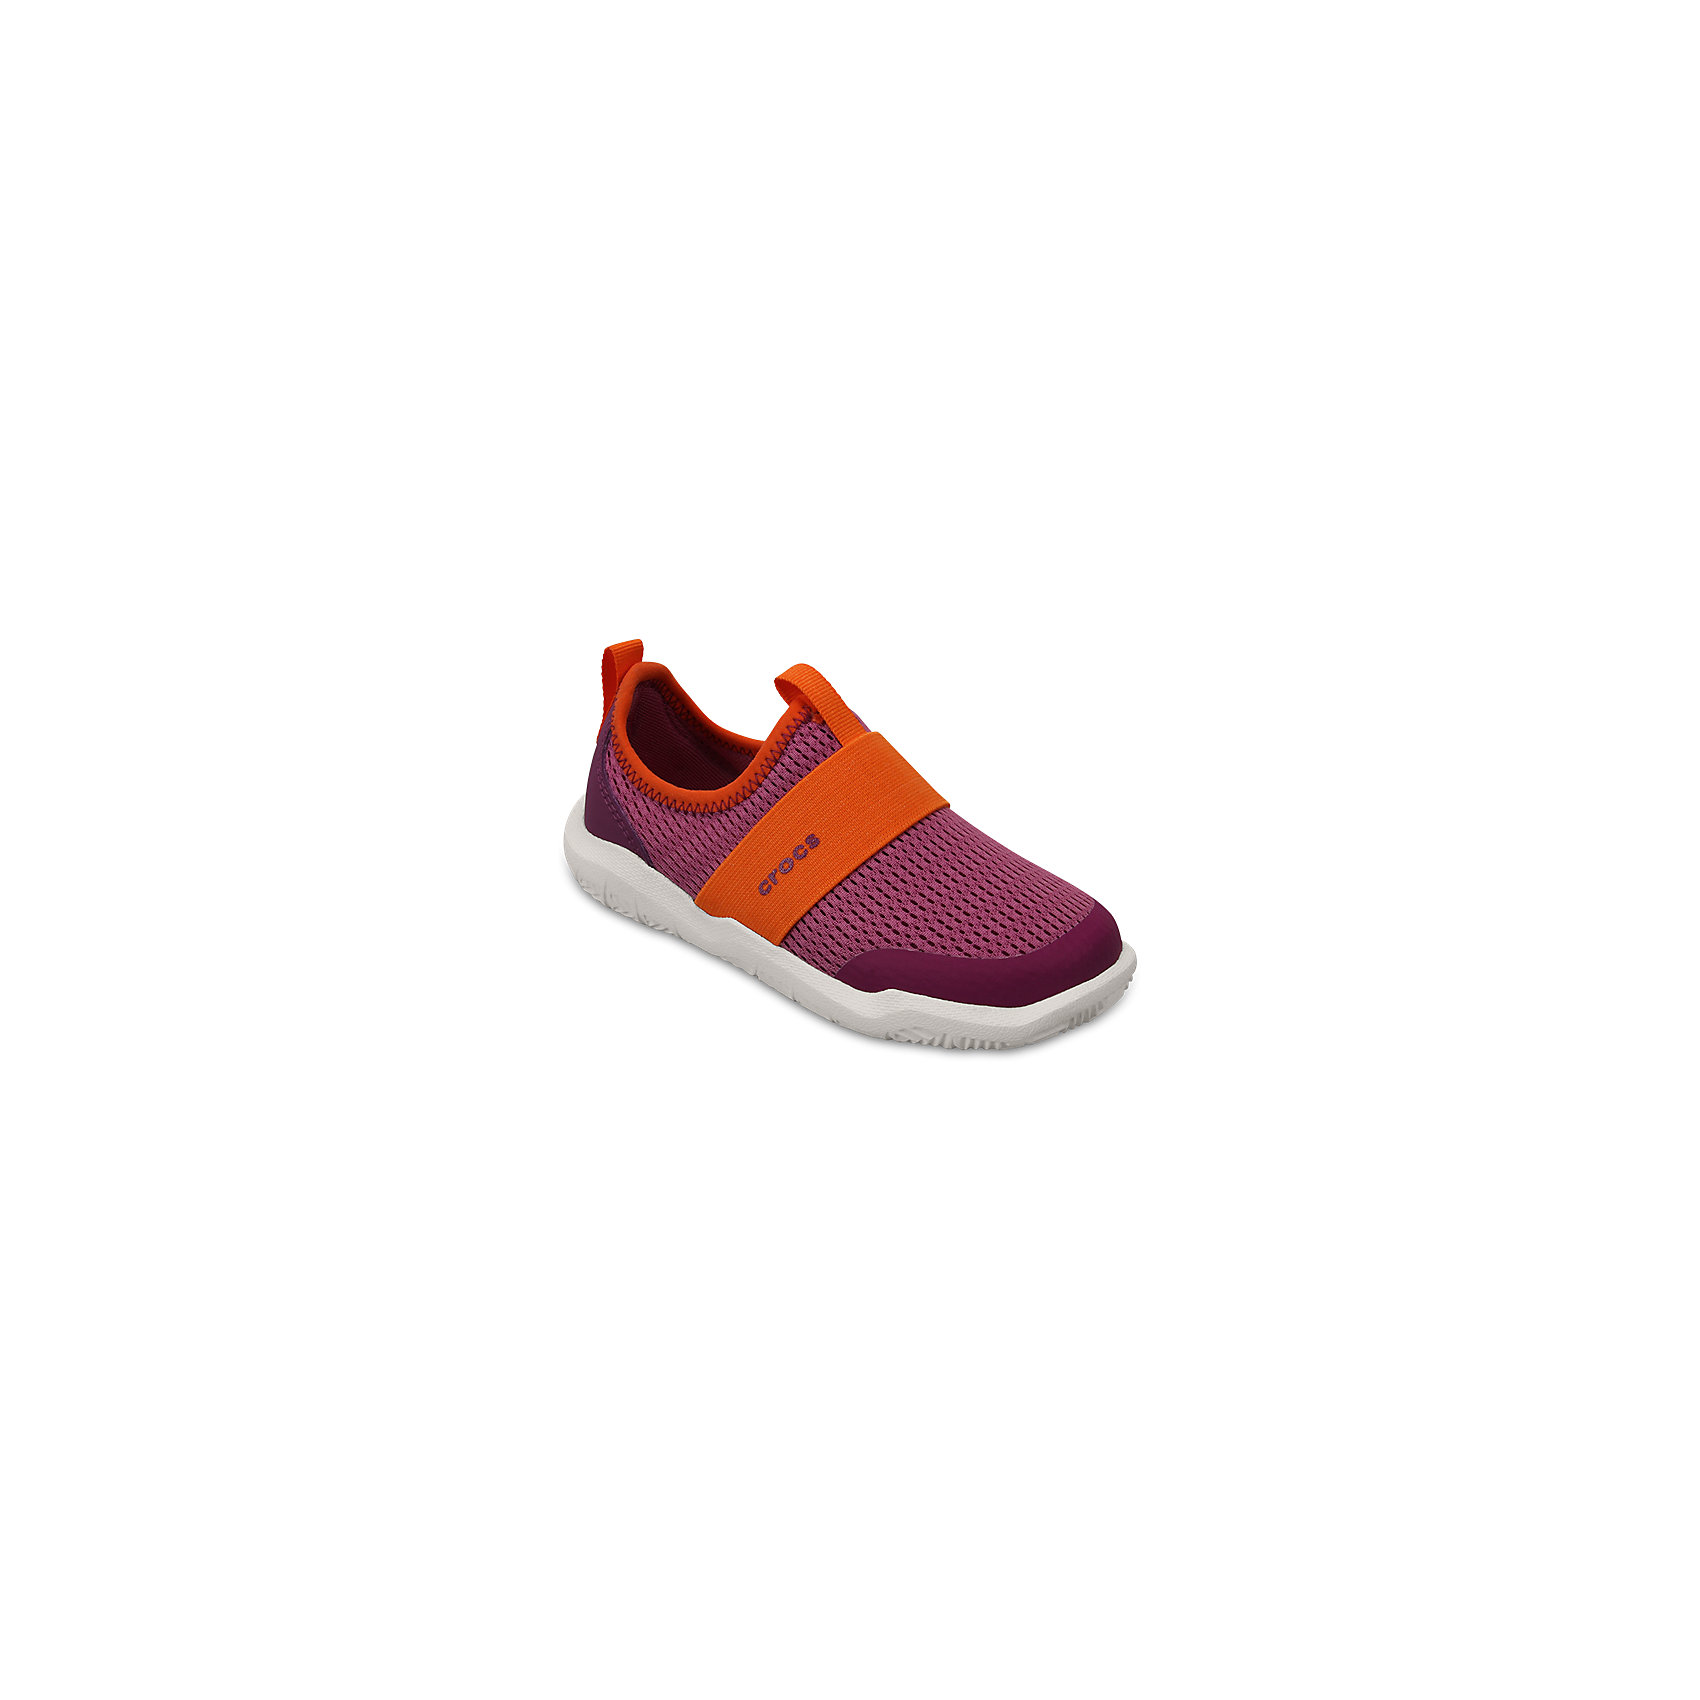 Кроссовки Kids' Swiftwater Easy-On Shoes, розовый